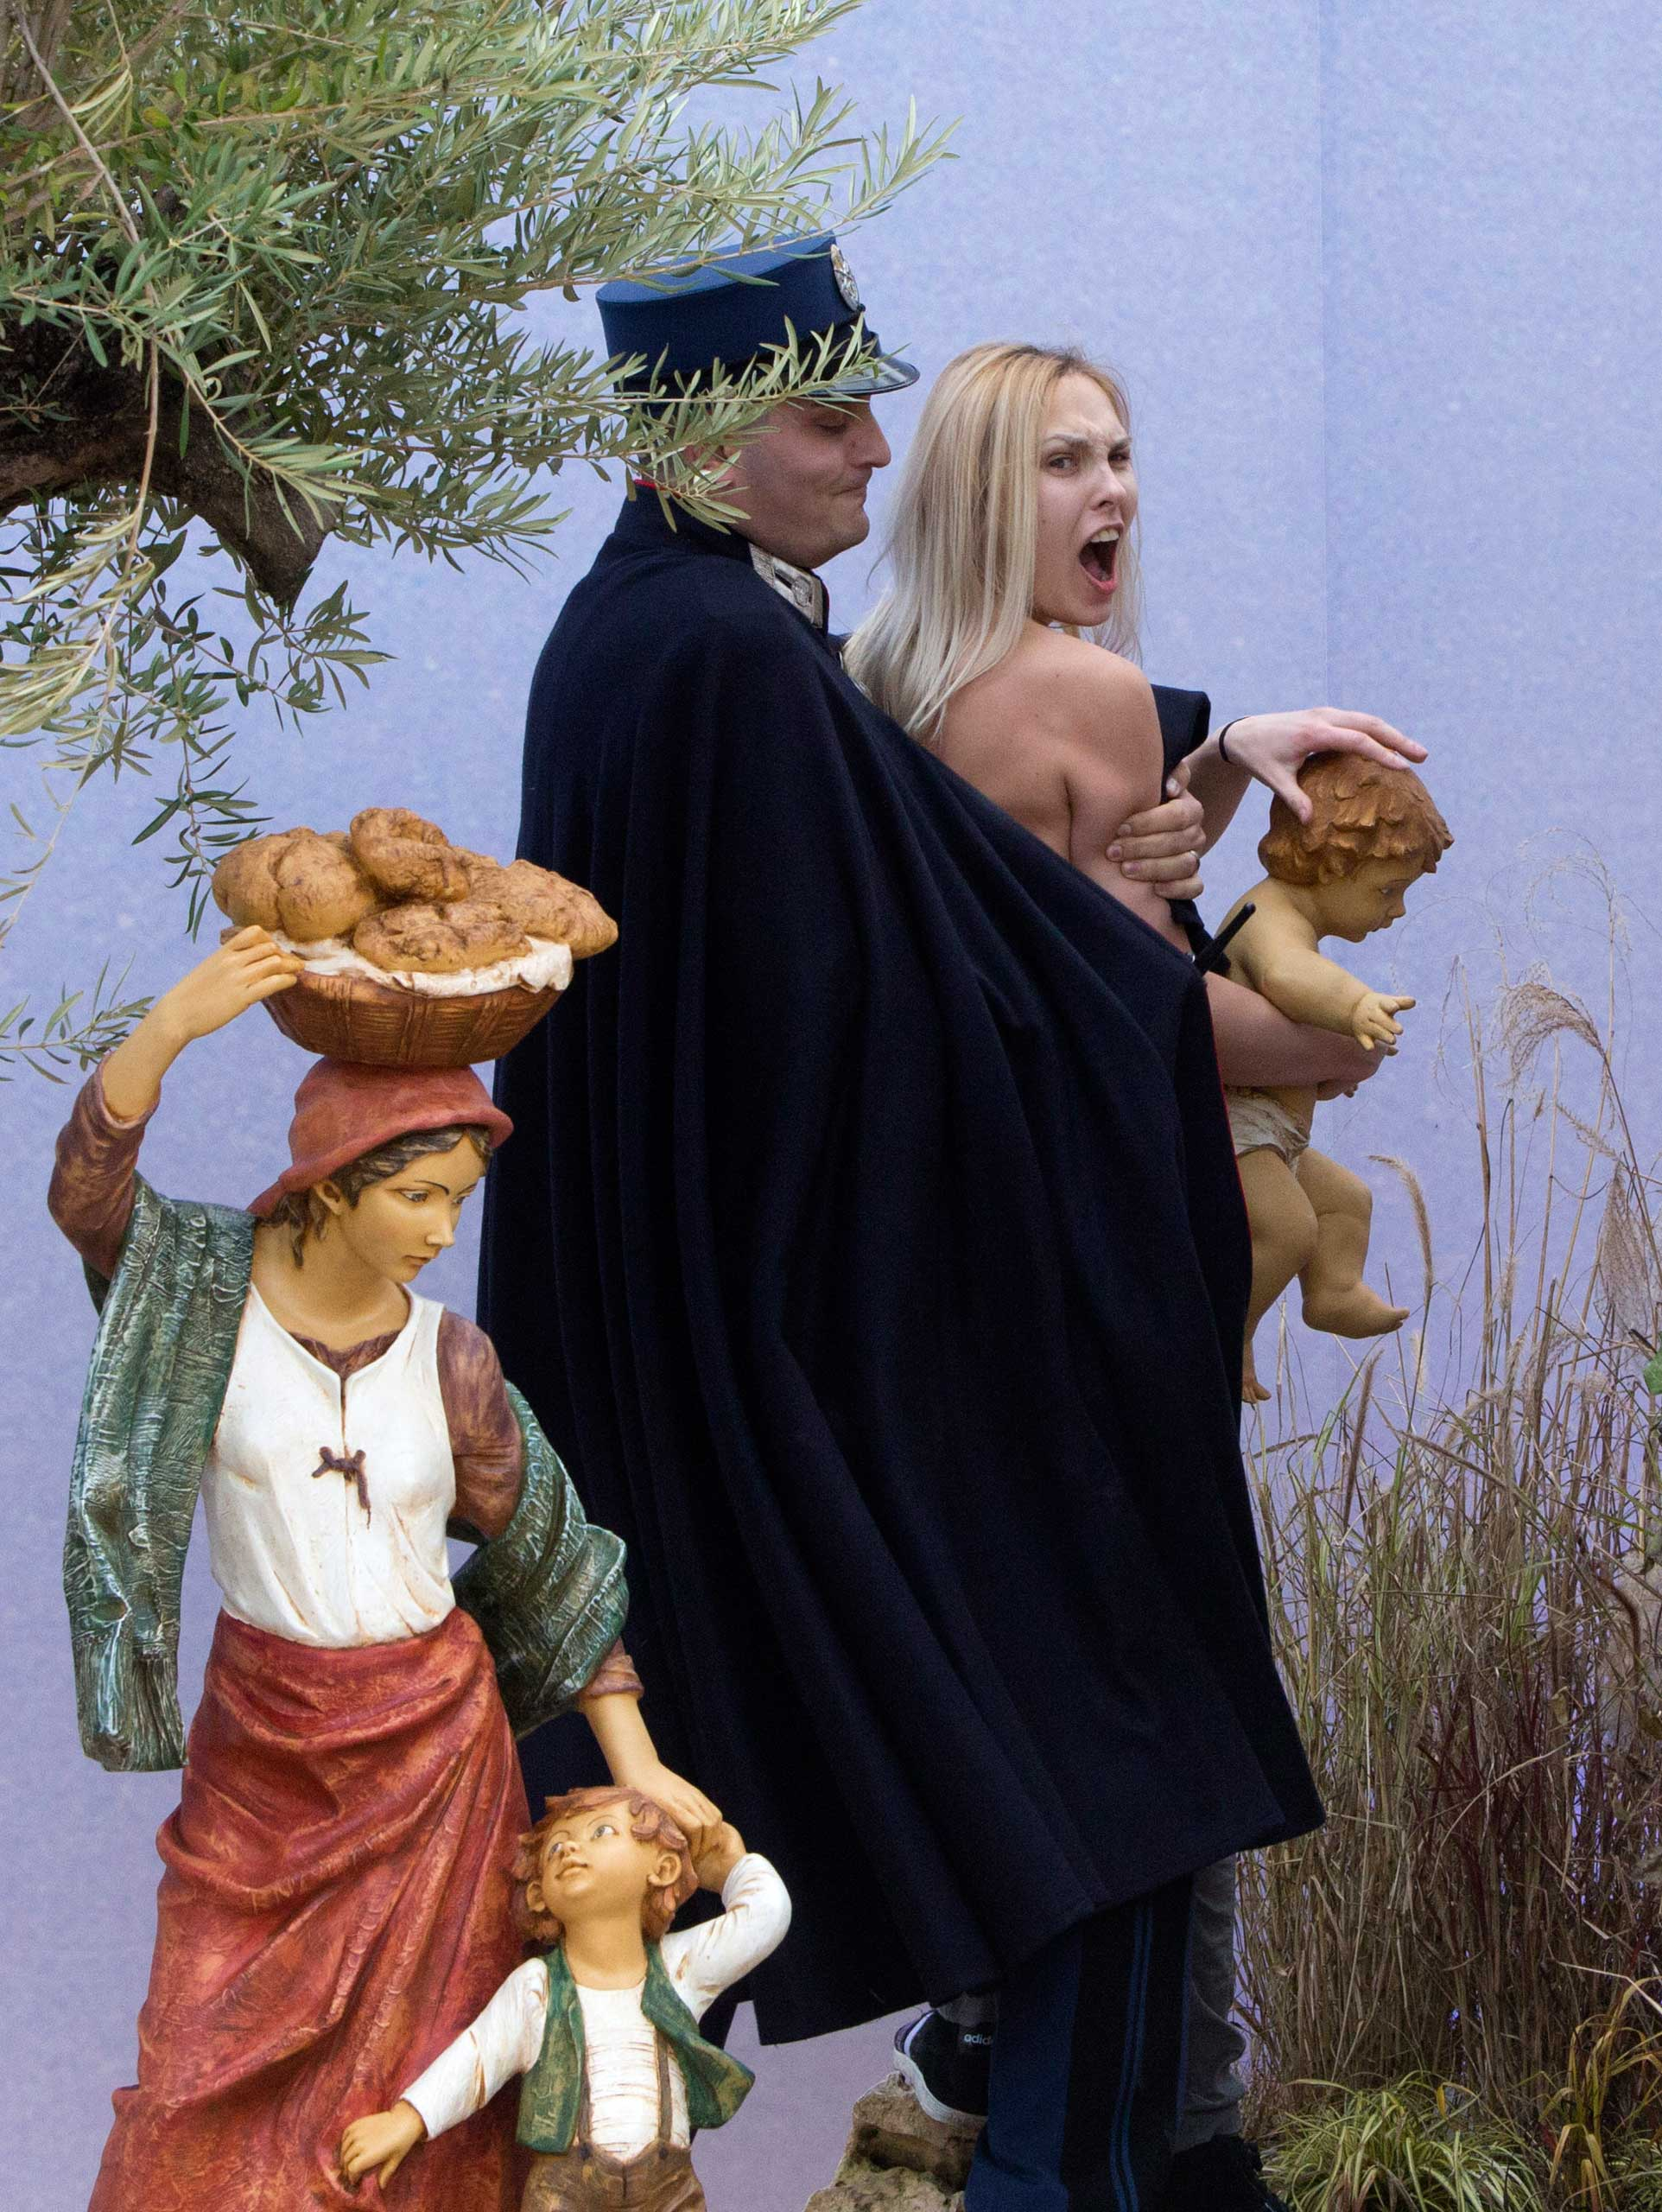 A gendarme from the Vatican's security forces stops a Ukrainian feminist group Femen activist after she snatched the statue of Baby Jesus from the Nativity scene set in St. Peter's Square at the Vatican, Dec. 25, 2014.